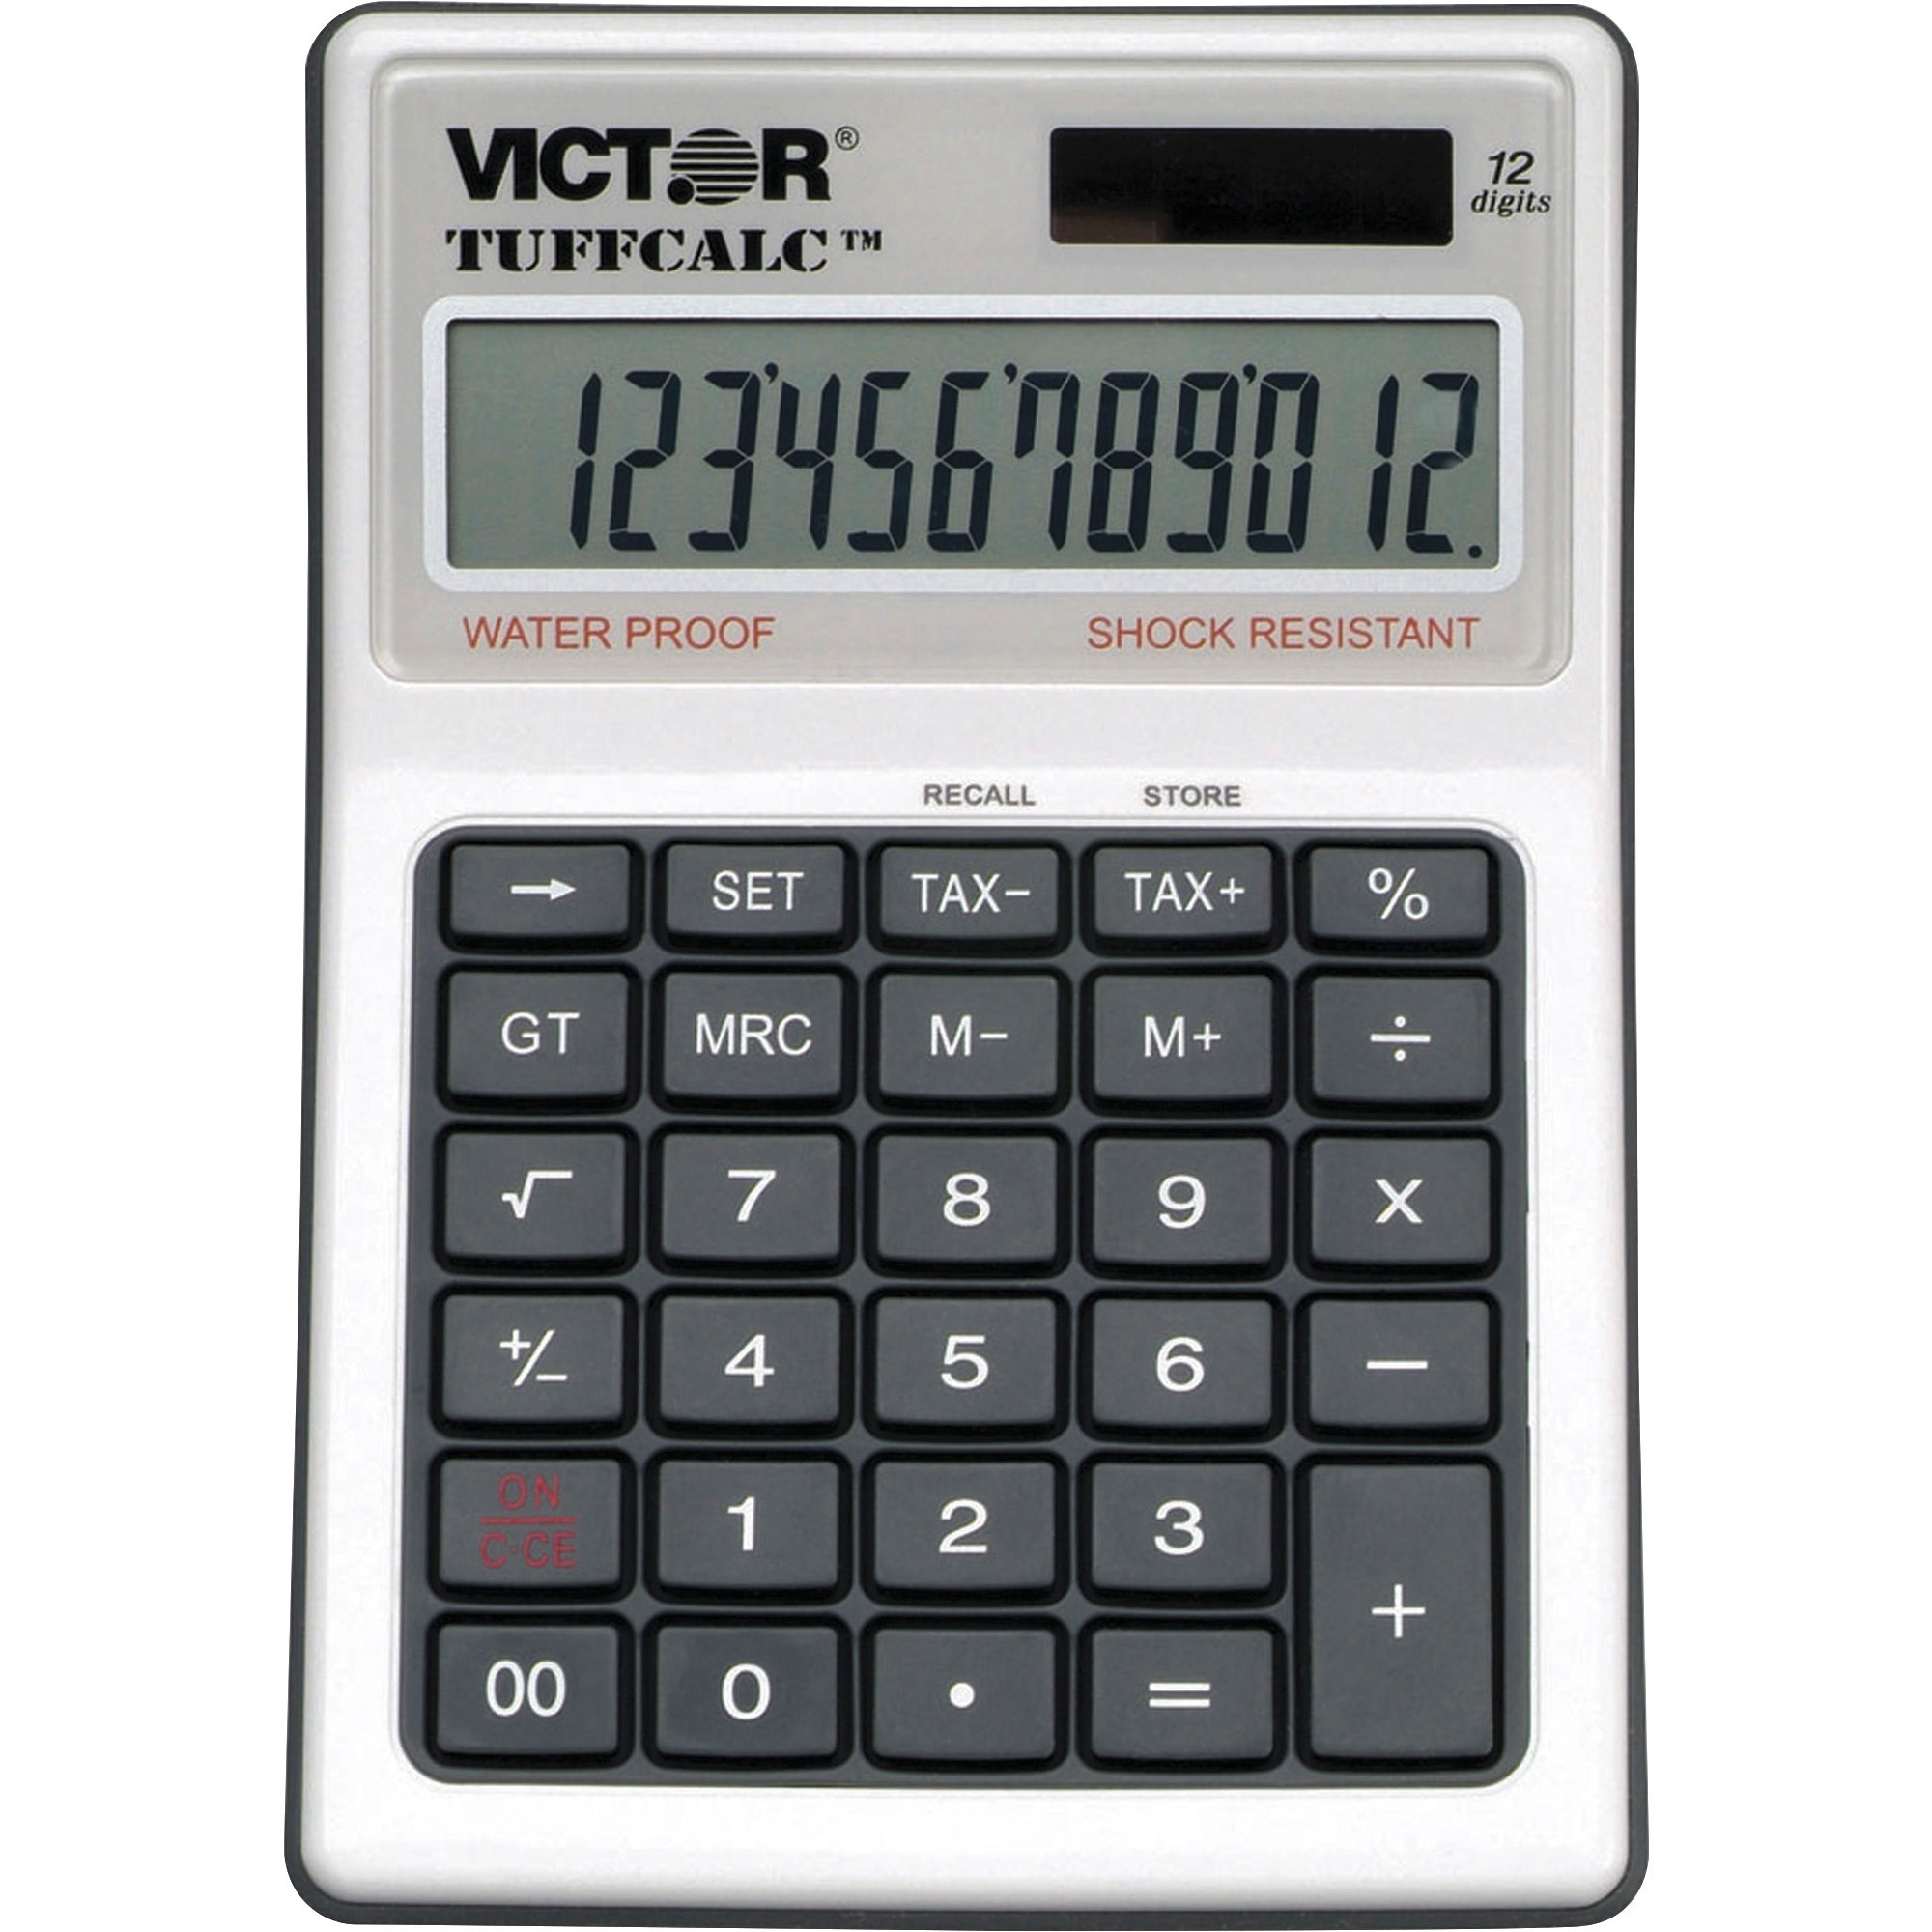 Victor, VCT99901, 99901 TuffCalc Calculator, 1 Each, White